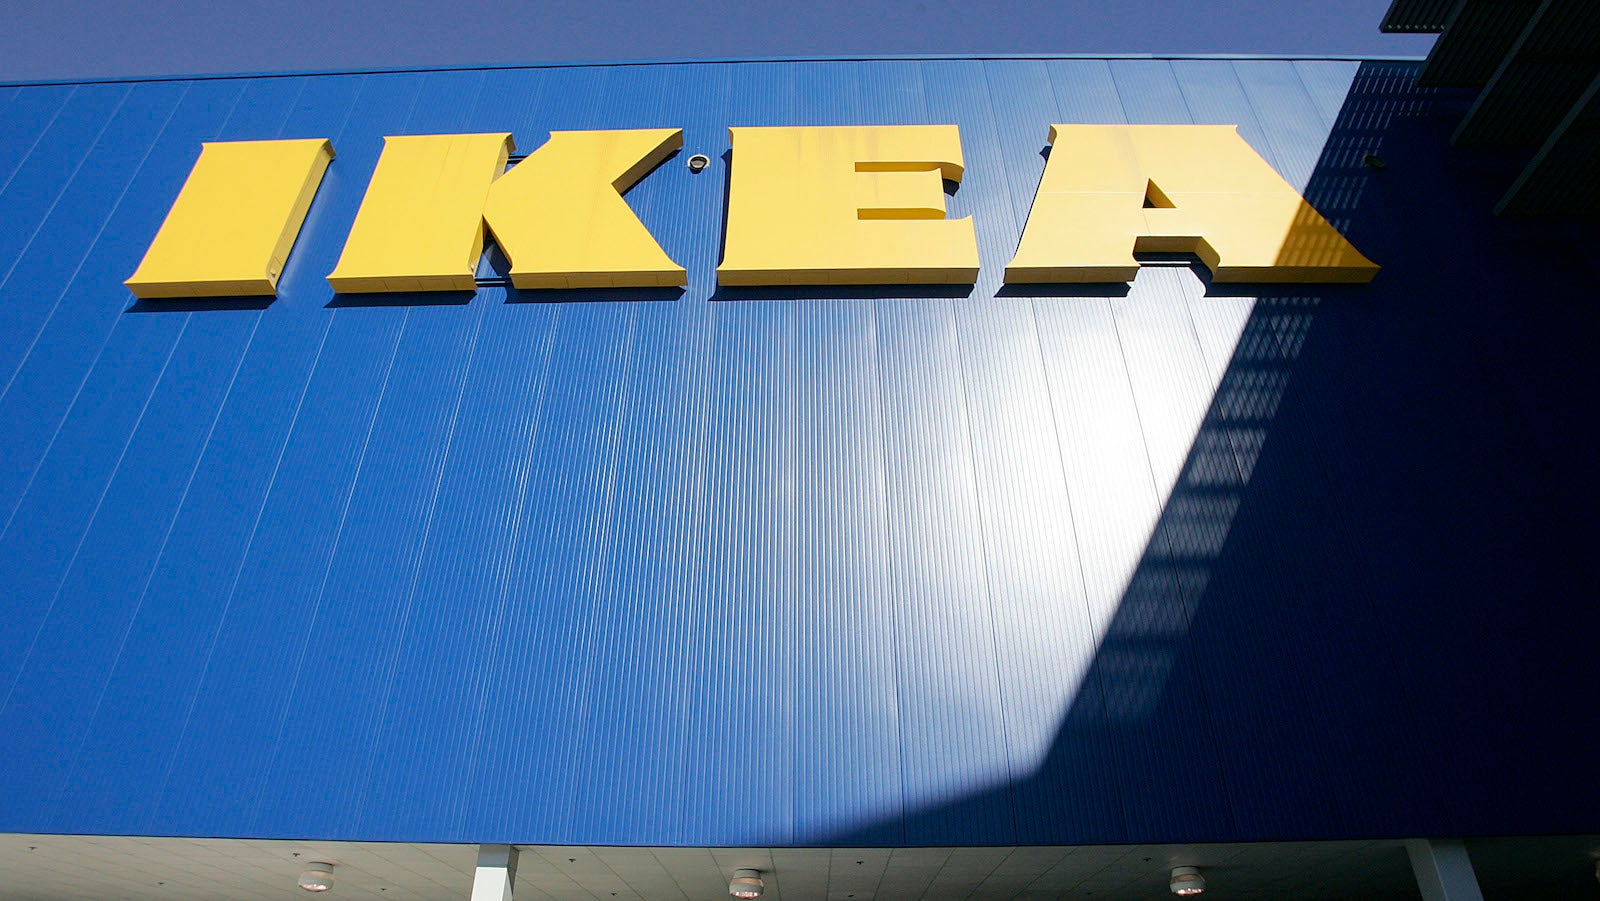 How To Not Get Fooled By IKEA's Mind Games